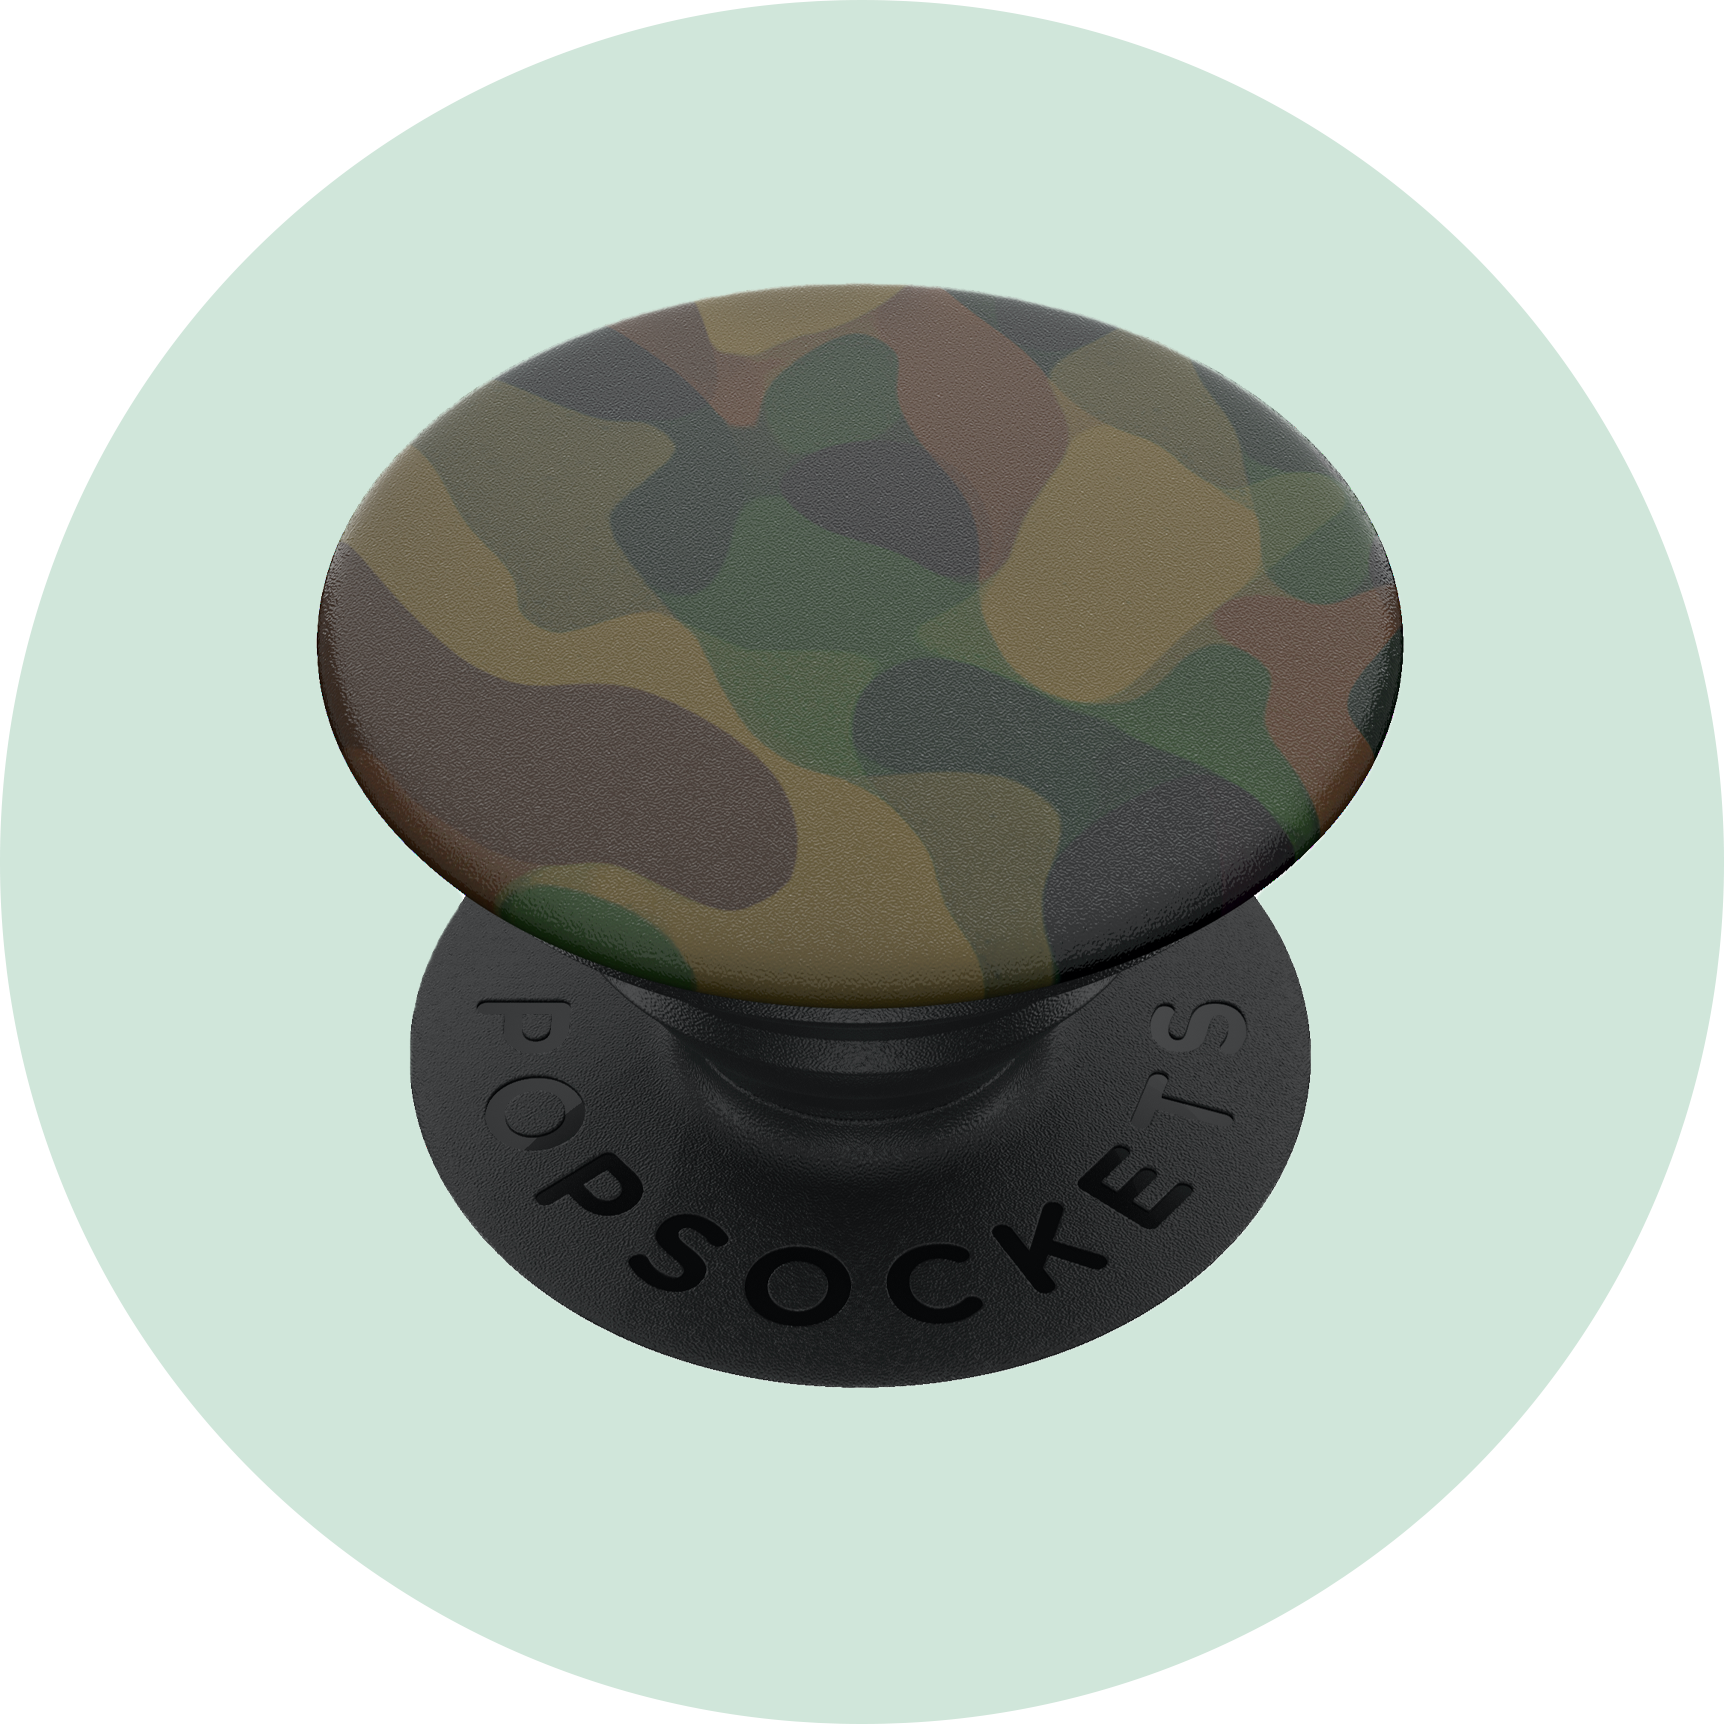 Popsockets Pop Socket